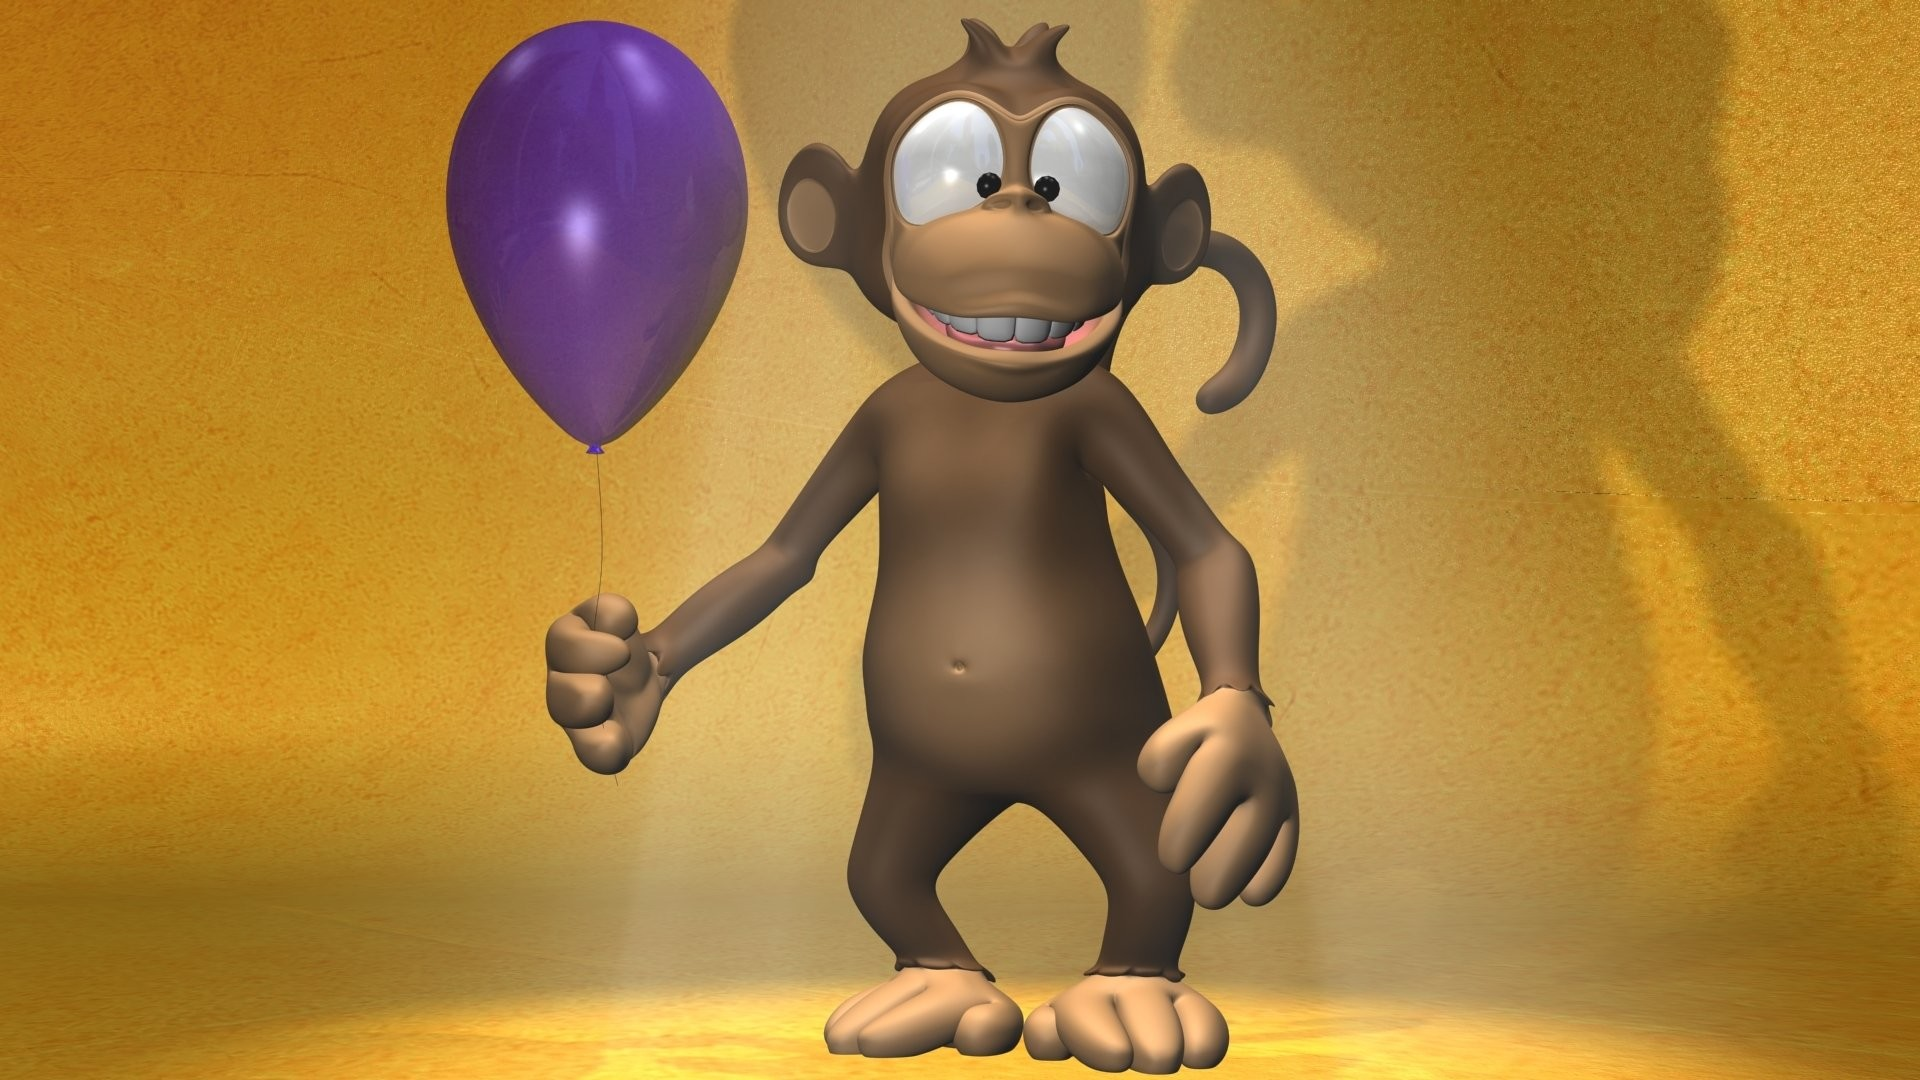 1920x1080 HD Wallpaper | Background ID:616443.  Cartoon Monkey